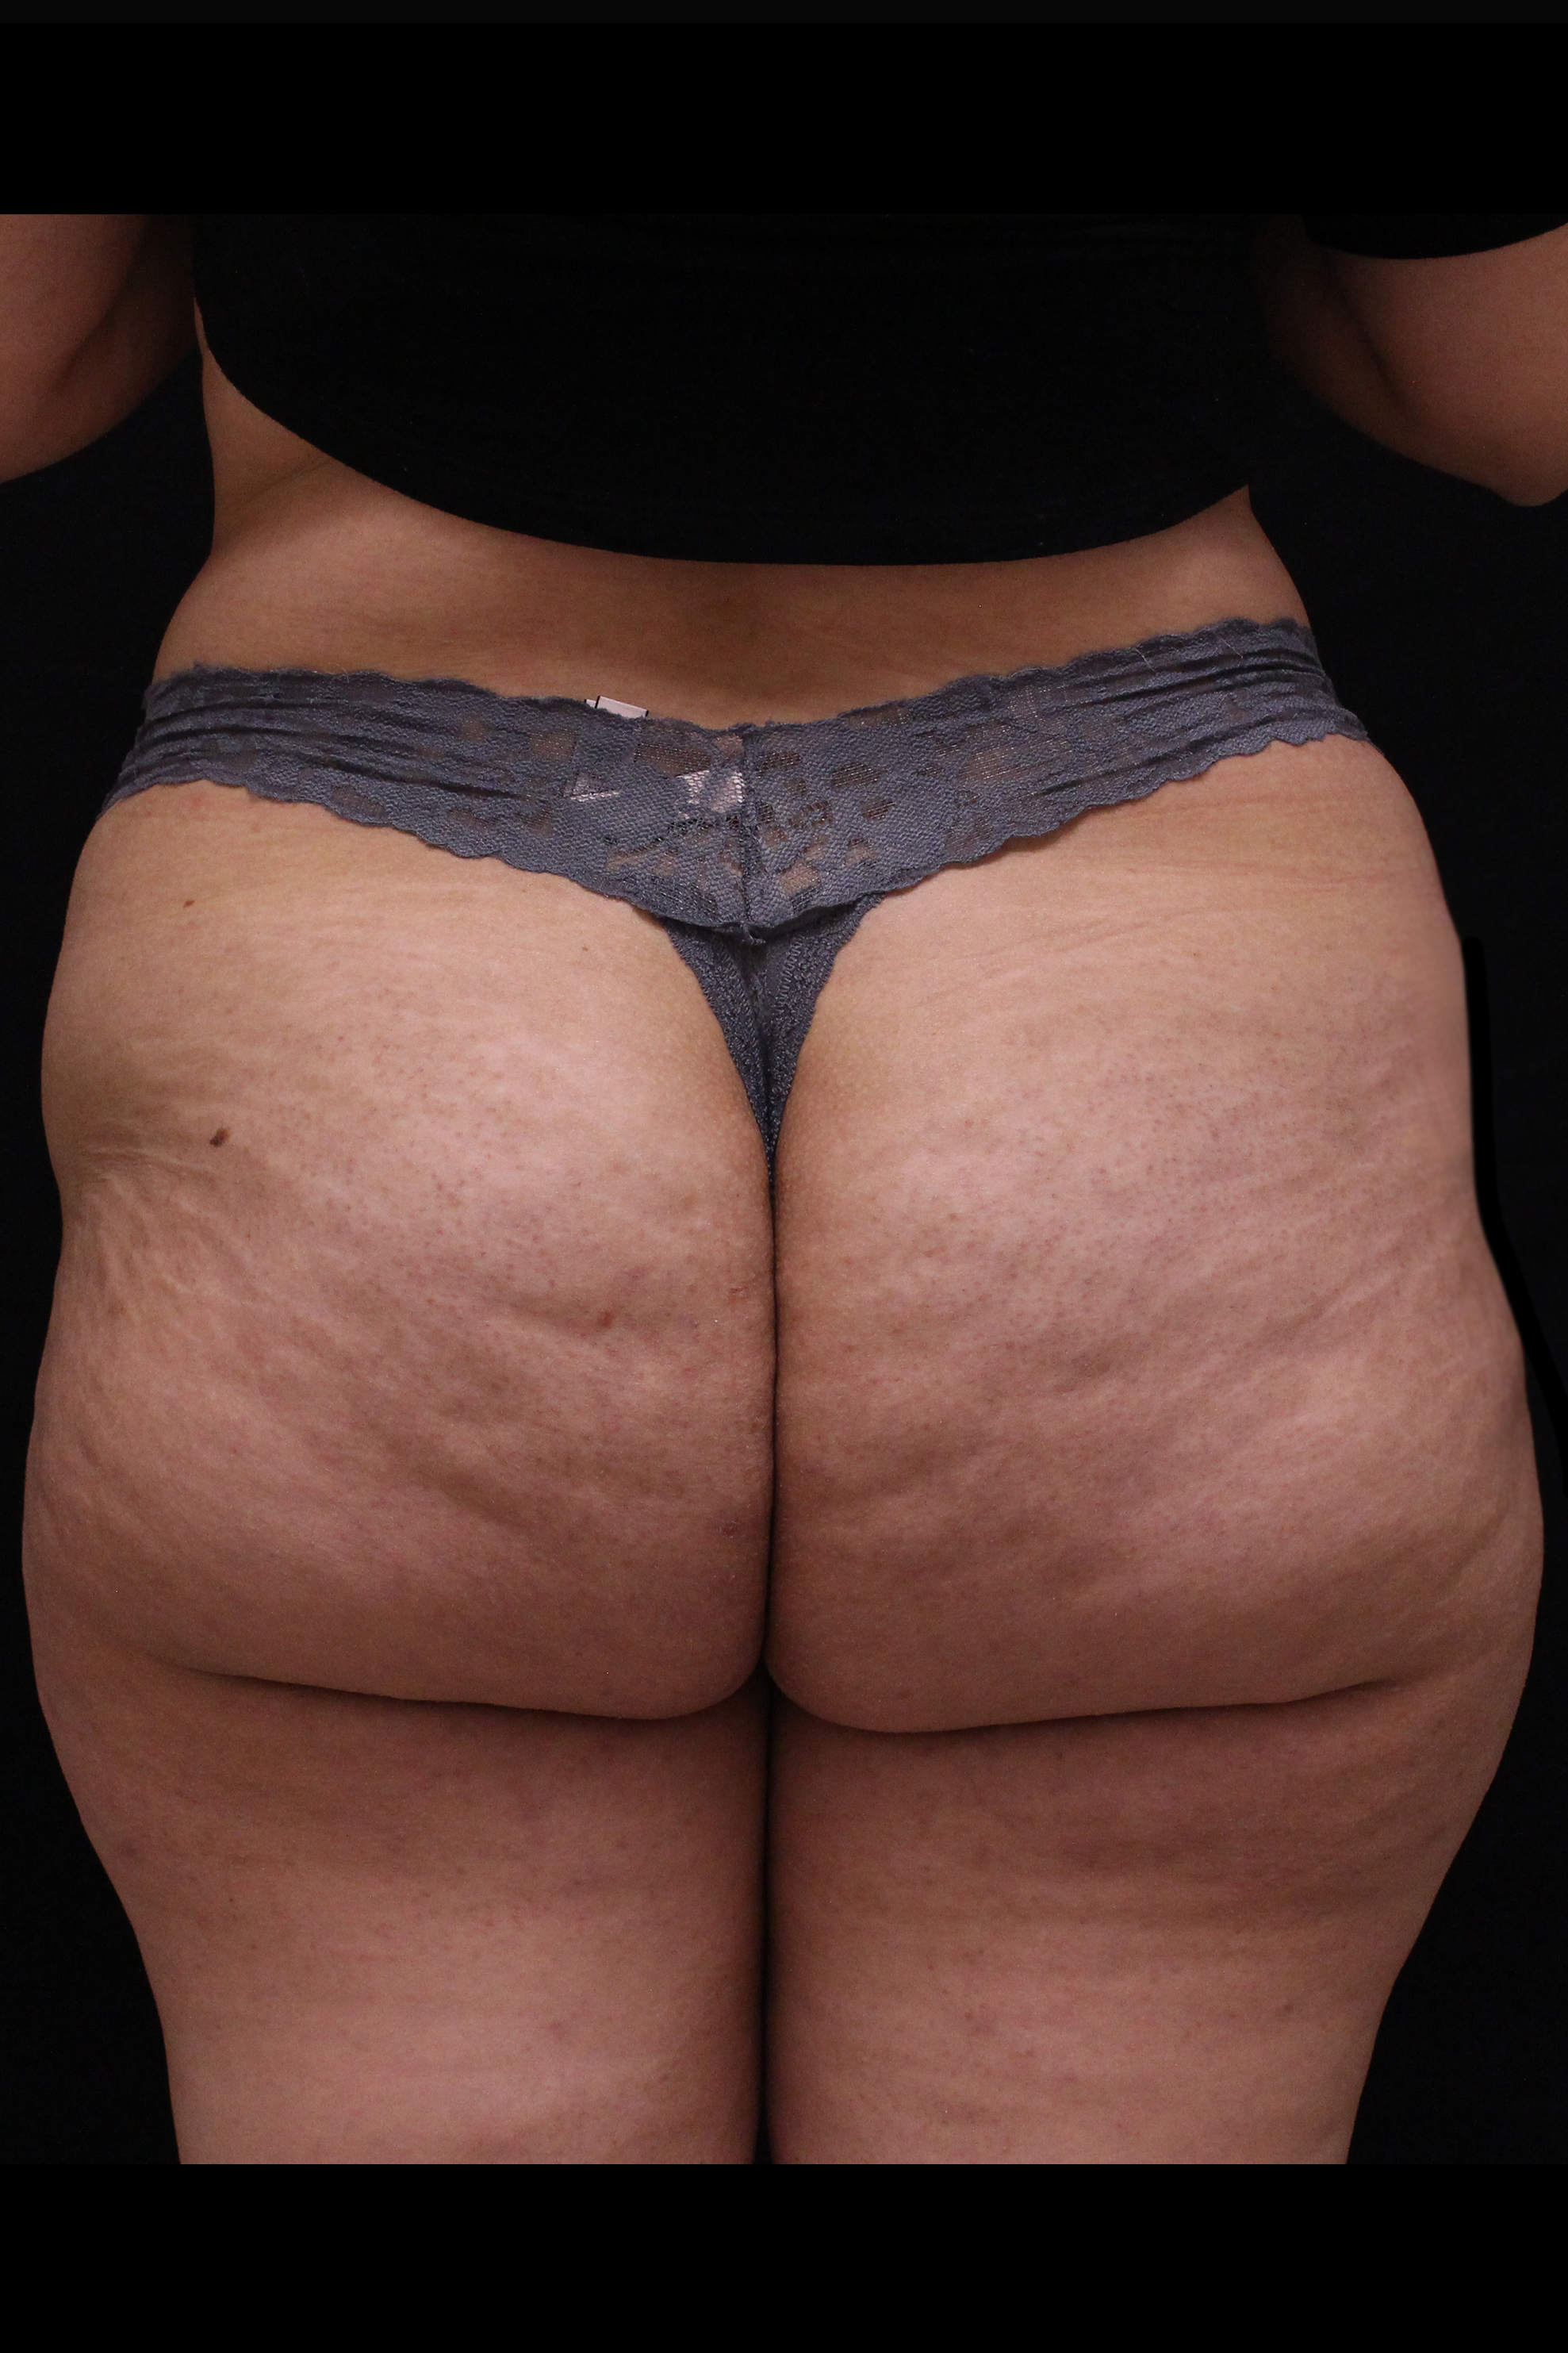 Before Cellulite Reduction - Qwo - Cellulite Reduction by injections